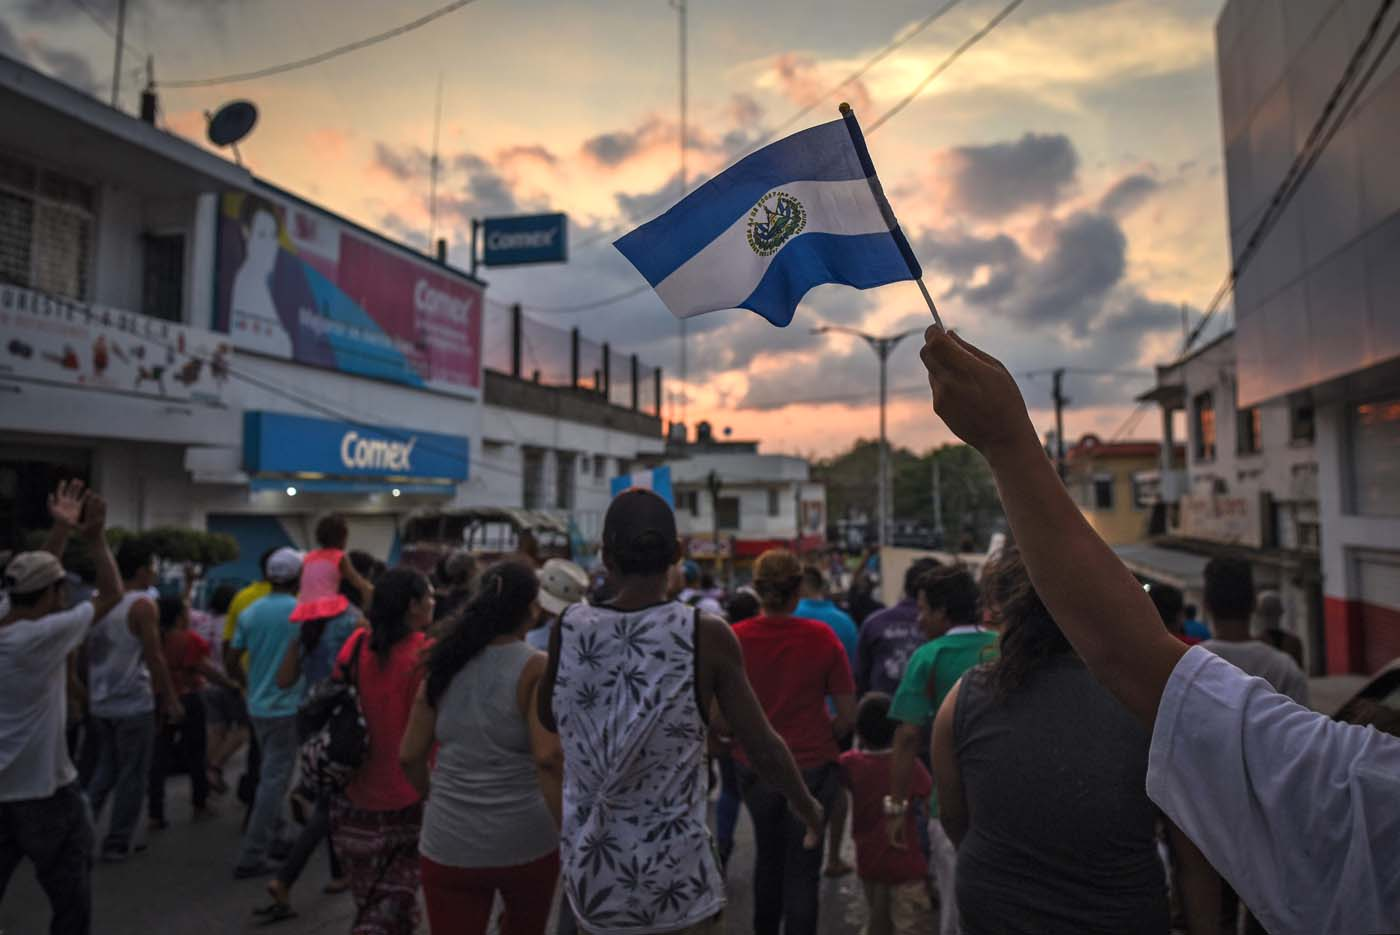 """A migrant -alongside other Central Americans taking part in a caravan called """"Migrant Viacrucis"""" towards the United States- flutters a Guatemalan national flag during a march to protest against US President Donald Trump's policies in Matias Romero, Oaxaca State, Mexico, on April 3, 2018. The hundreds of Central Americans in the """"Way of the Cross"""" migrant caravan have infuriated Trump, but they are not moving very fast -- if at all -- and remain far from the US border. As Trump vowed Tuesday to send troops to secure the southern US border, the caravan was camped out for the third straight day in the town of Matias Romero, in southern Mexico, more than 3,000 kilometers (1,800 miles) from the United States. / AFP PHOTO / VICTORIA RAZO"""